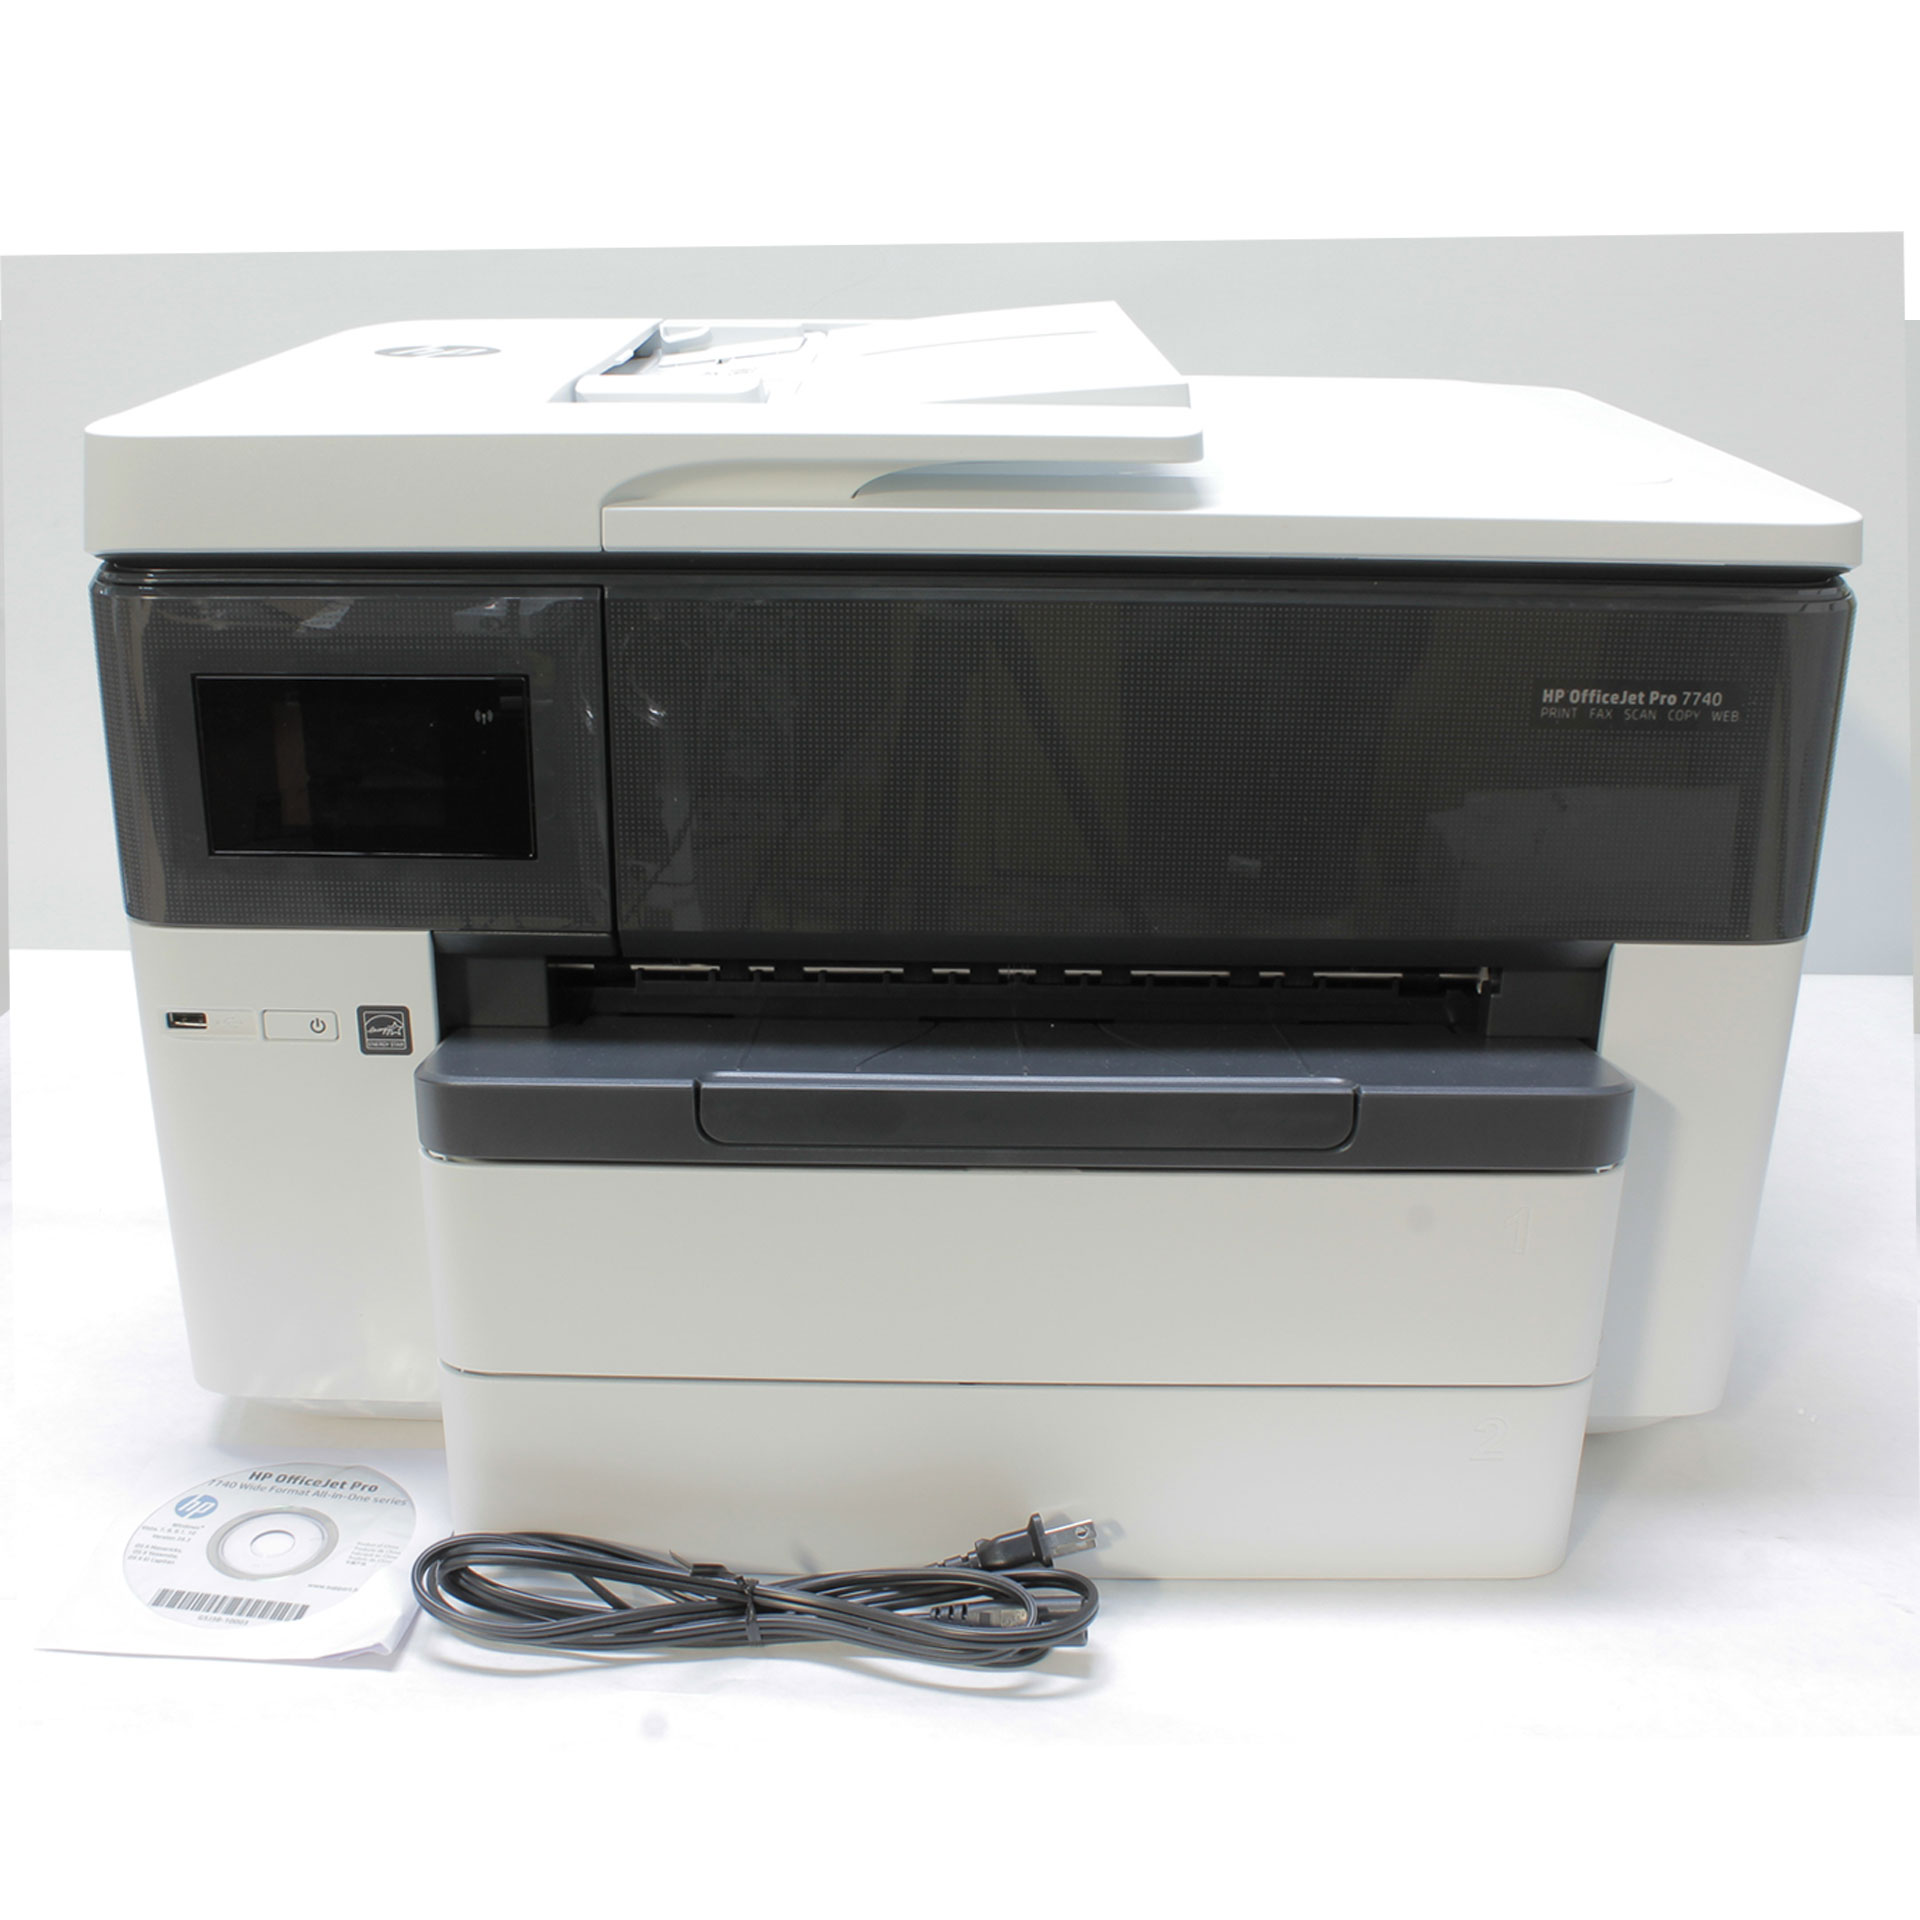 HP Officejet Pro 7740 Color Multifunction Printer G5J38A AiO